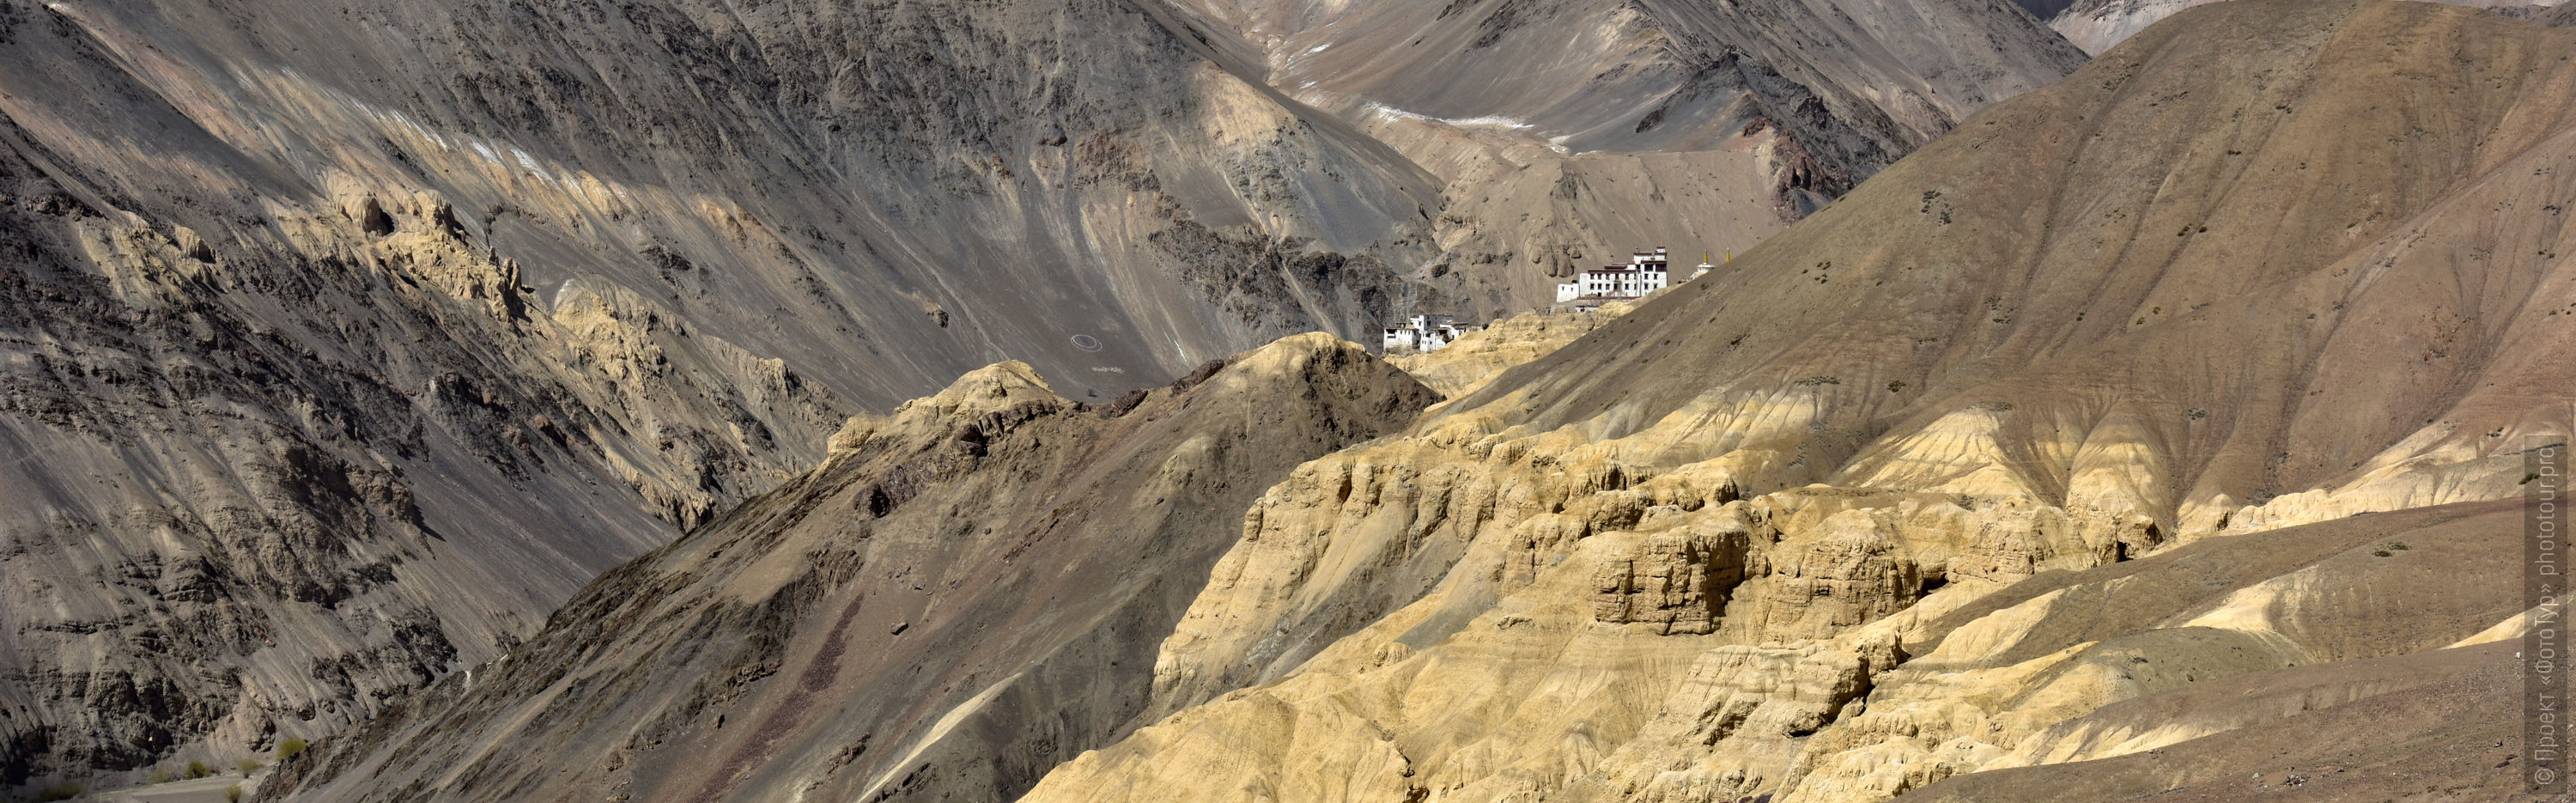 Moon Land, Lamayuru. Photo tour to Tibet for the Winter Mysteries in Ladakh, Stok and Matho monasteries, 01.03. - 03/10/2020